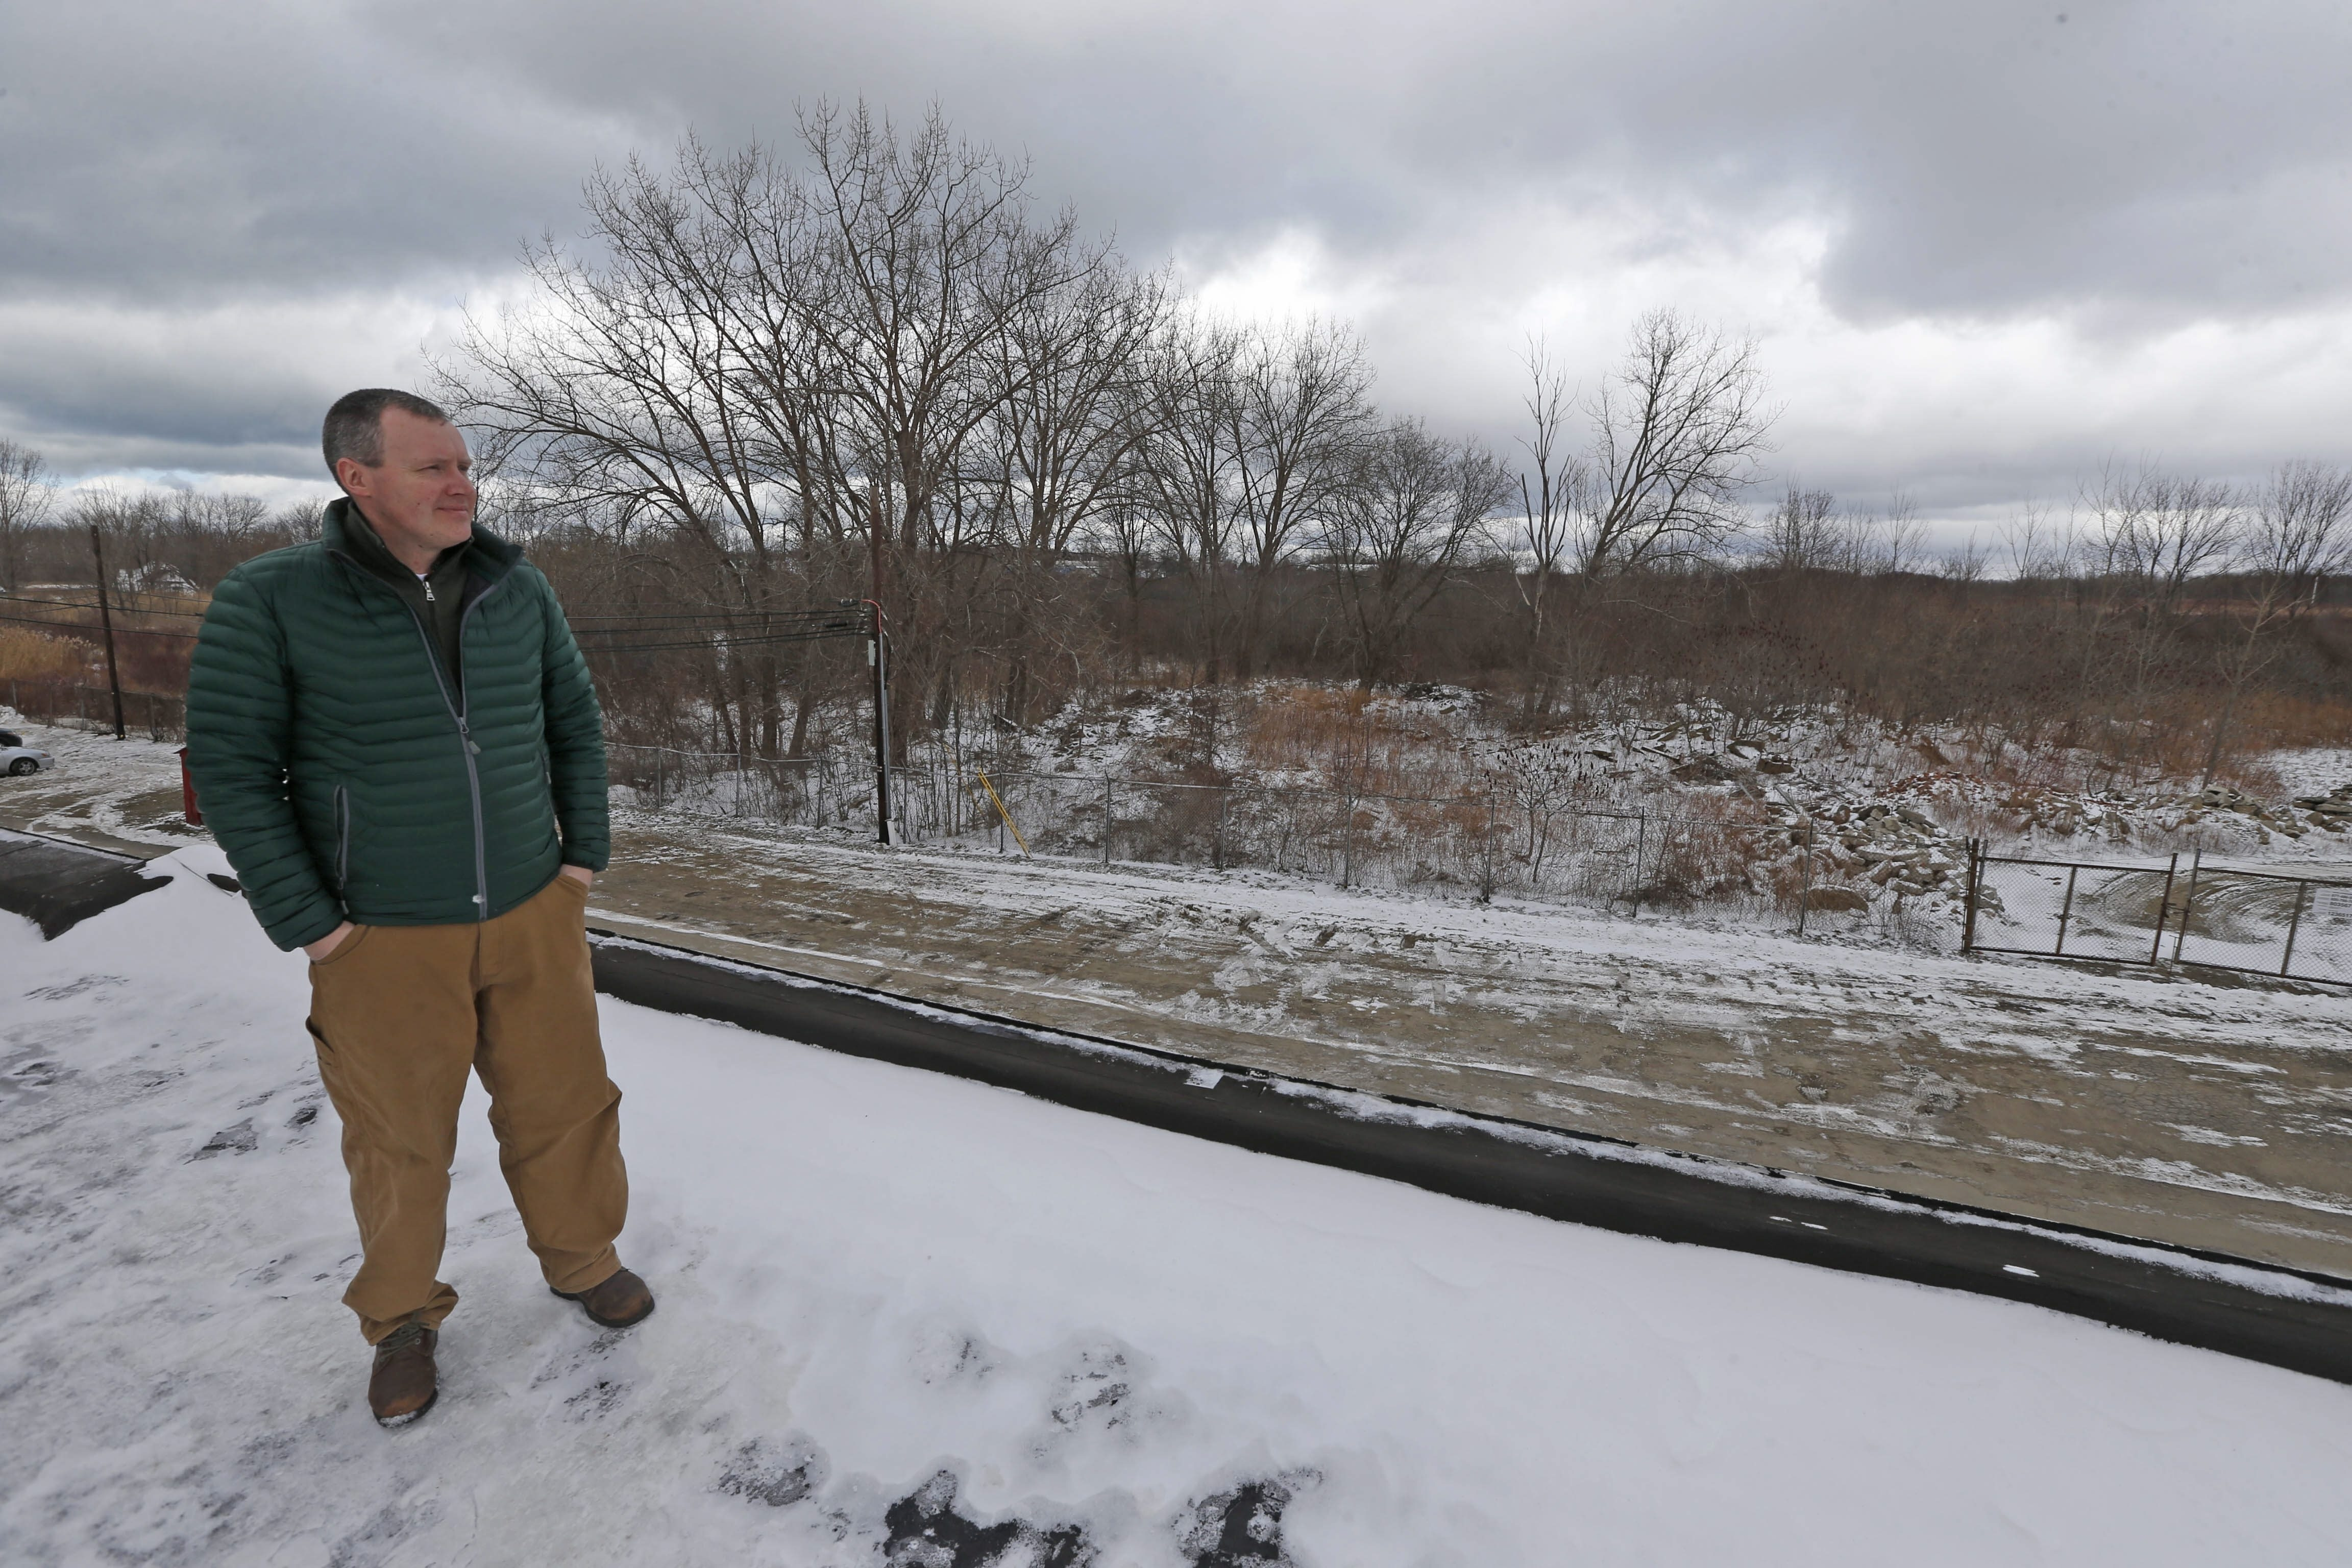 Patrick Stokes, a manager with Muldowney Development, looks out over the 12 acres, a portion of the total 32 acres obtained,  that executives with his company sold for the footprint of the new Athenex project location near 3817 Lake Shore Drive in the Town of Dunkirk. (Robert Kirkham/Buffalo News)